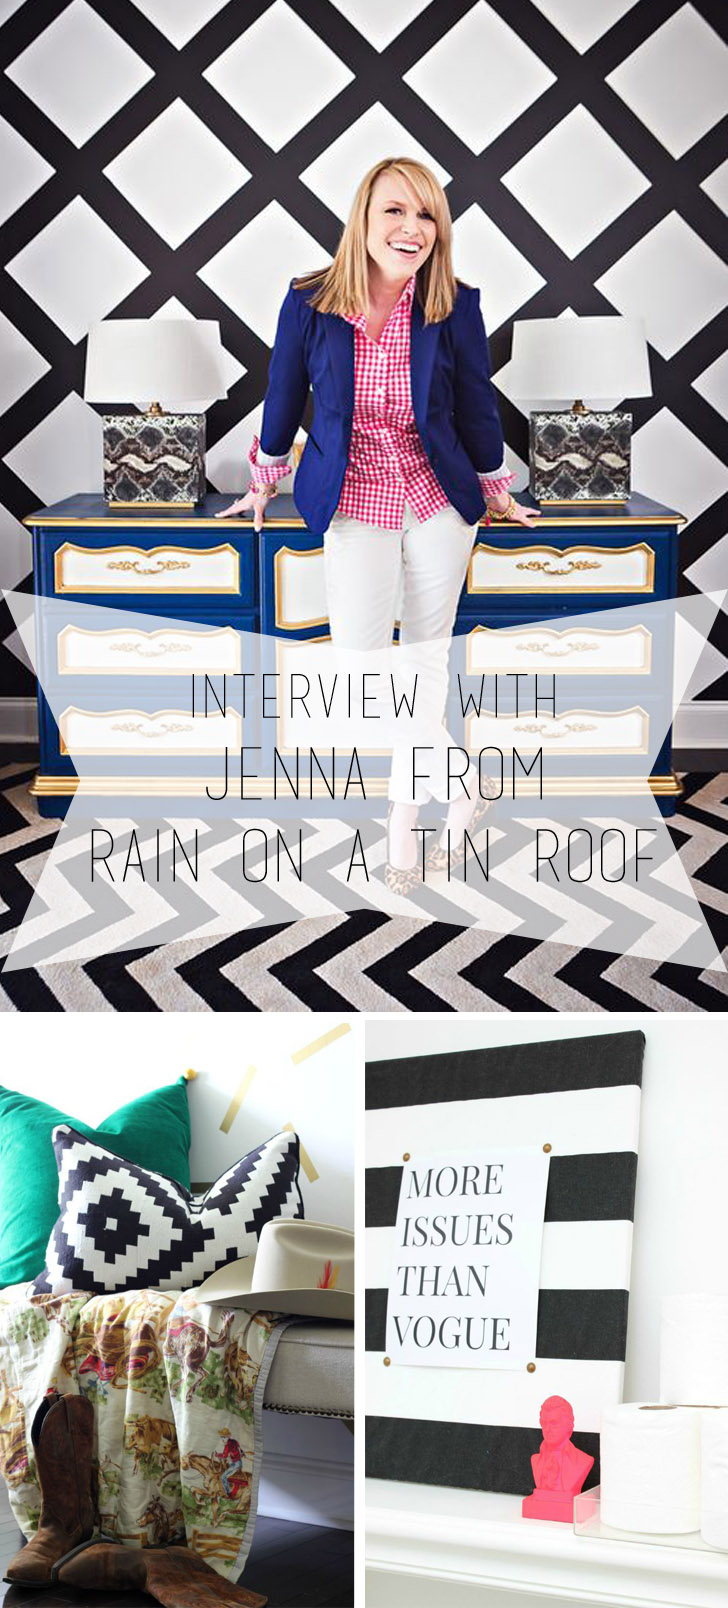 Q & A with Jenna from Rain on a Tin Roof